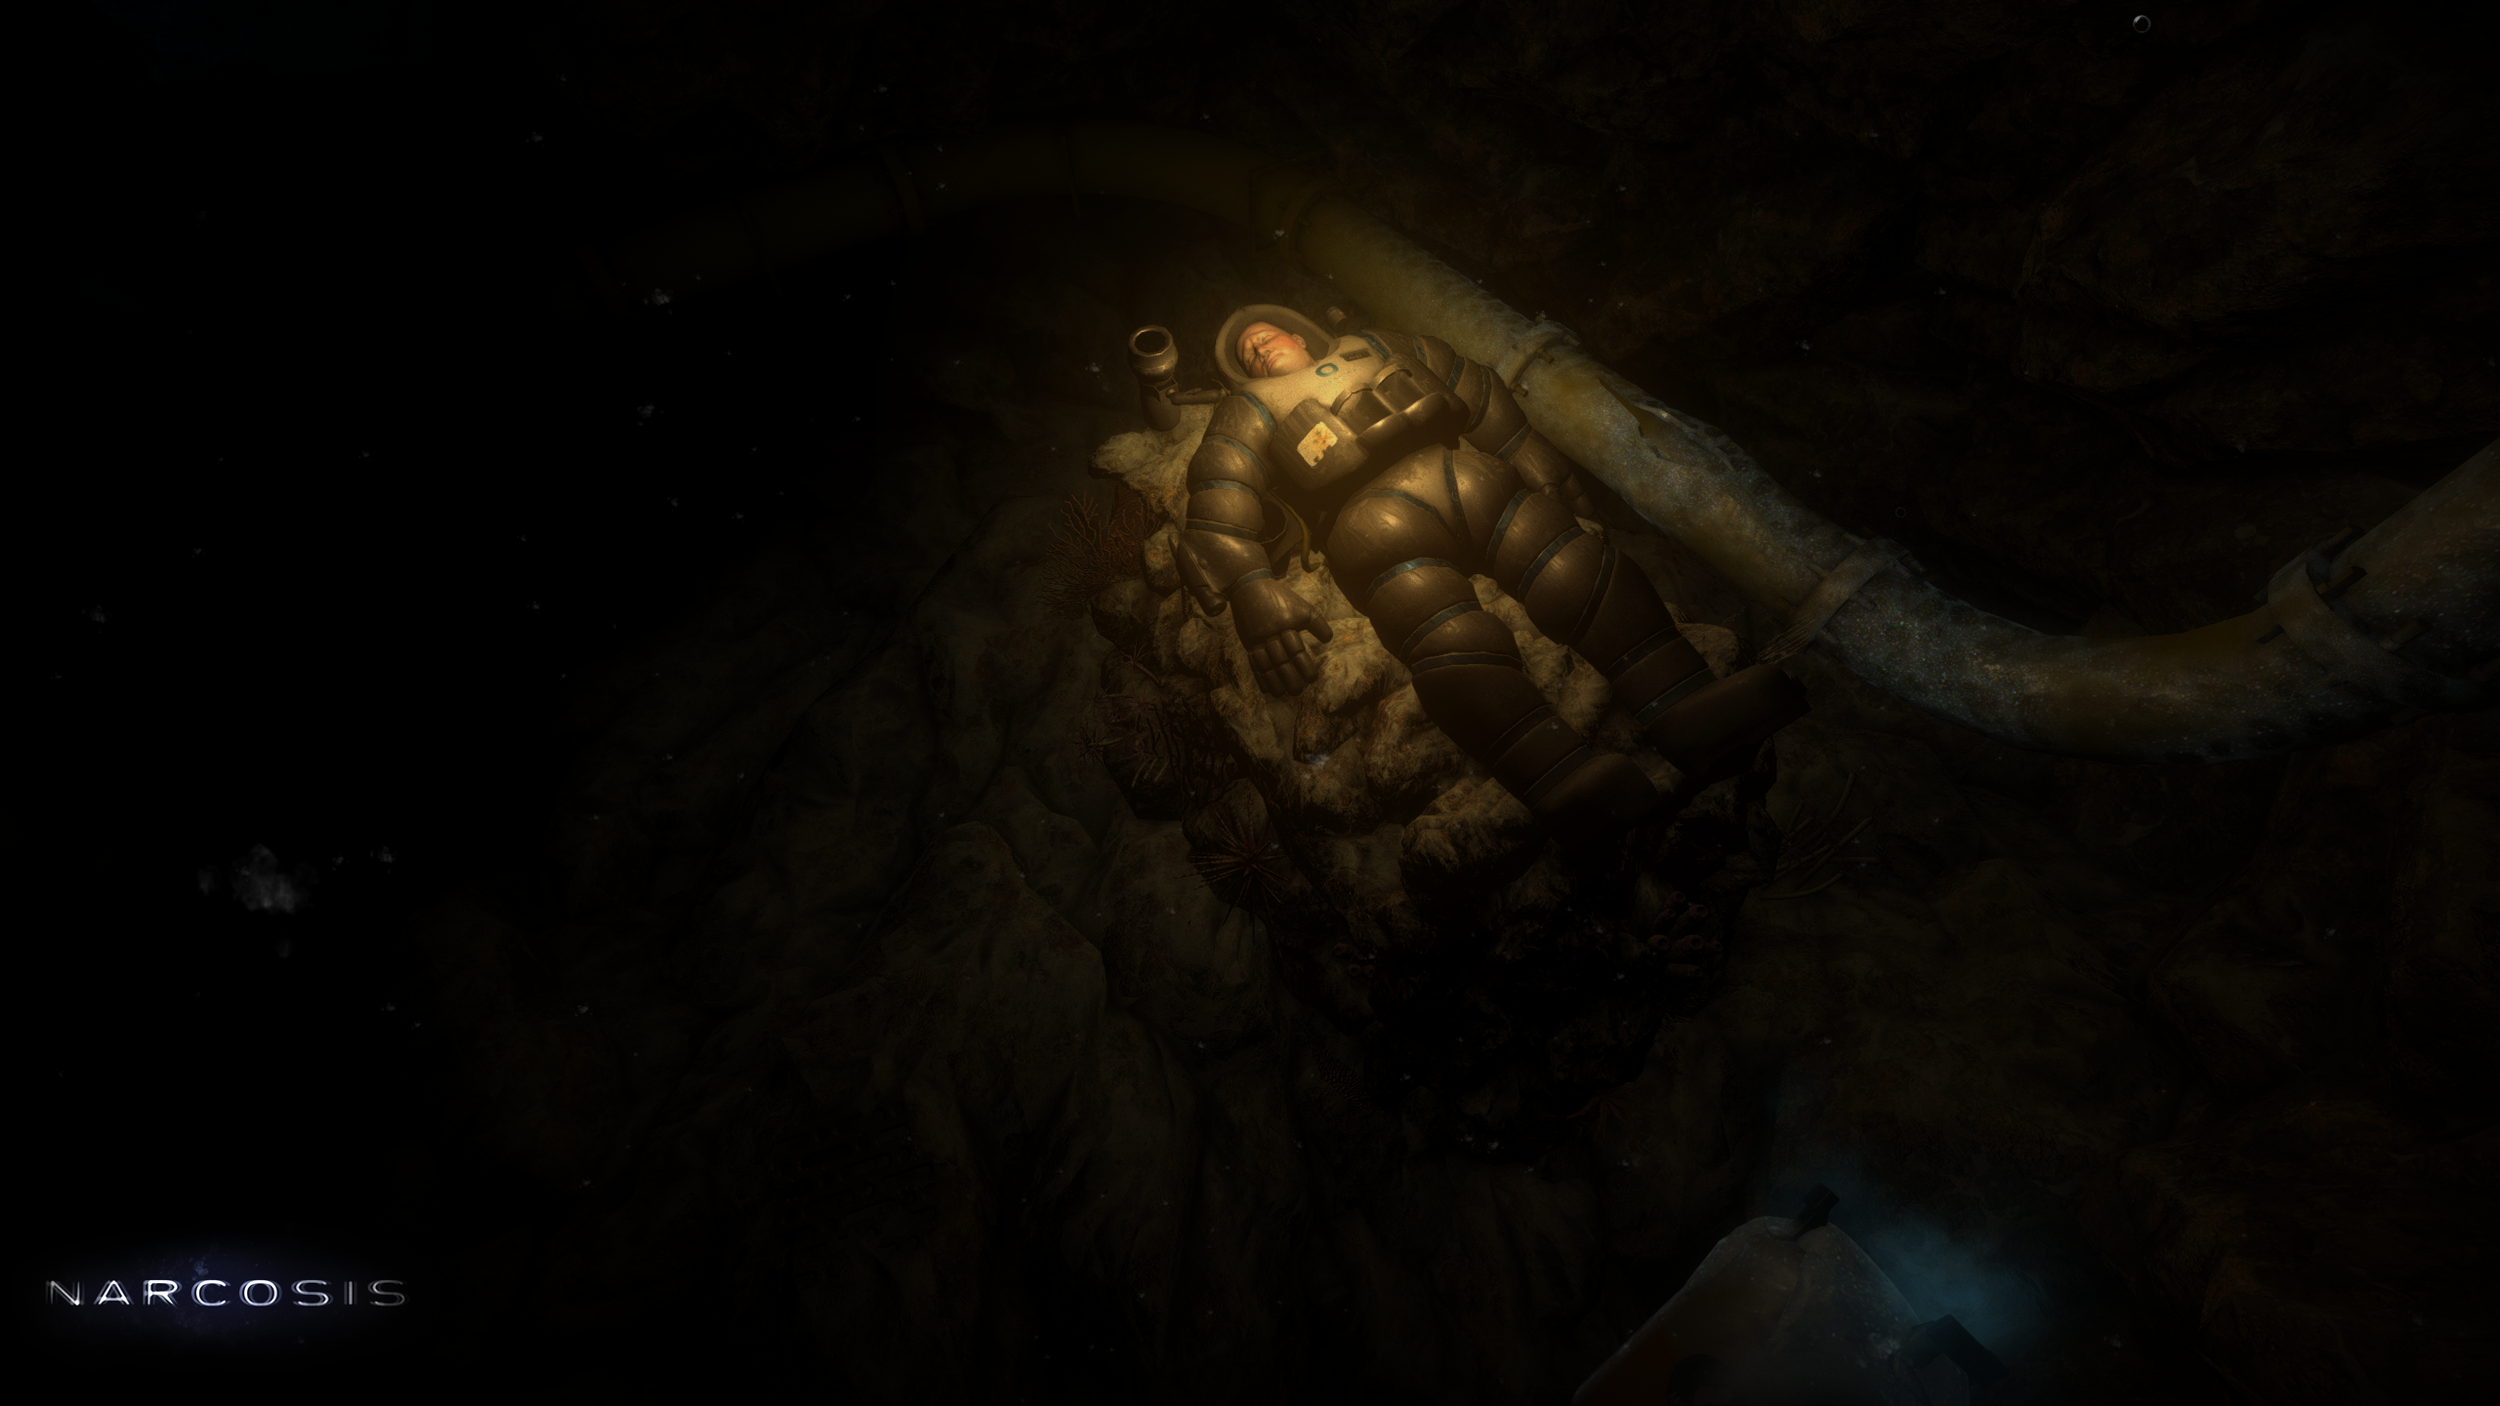 Narcosis_Tomb_2560x1440.png